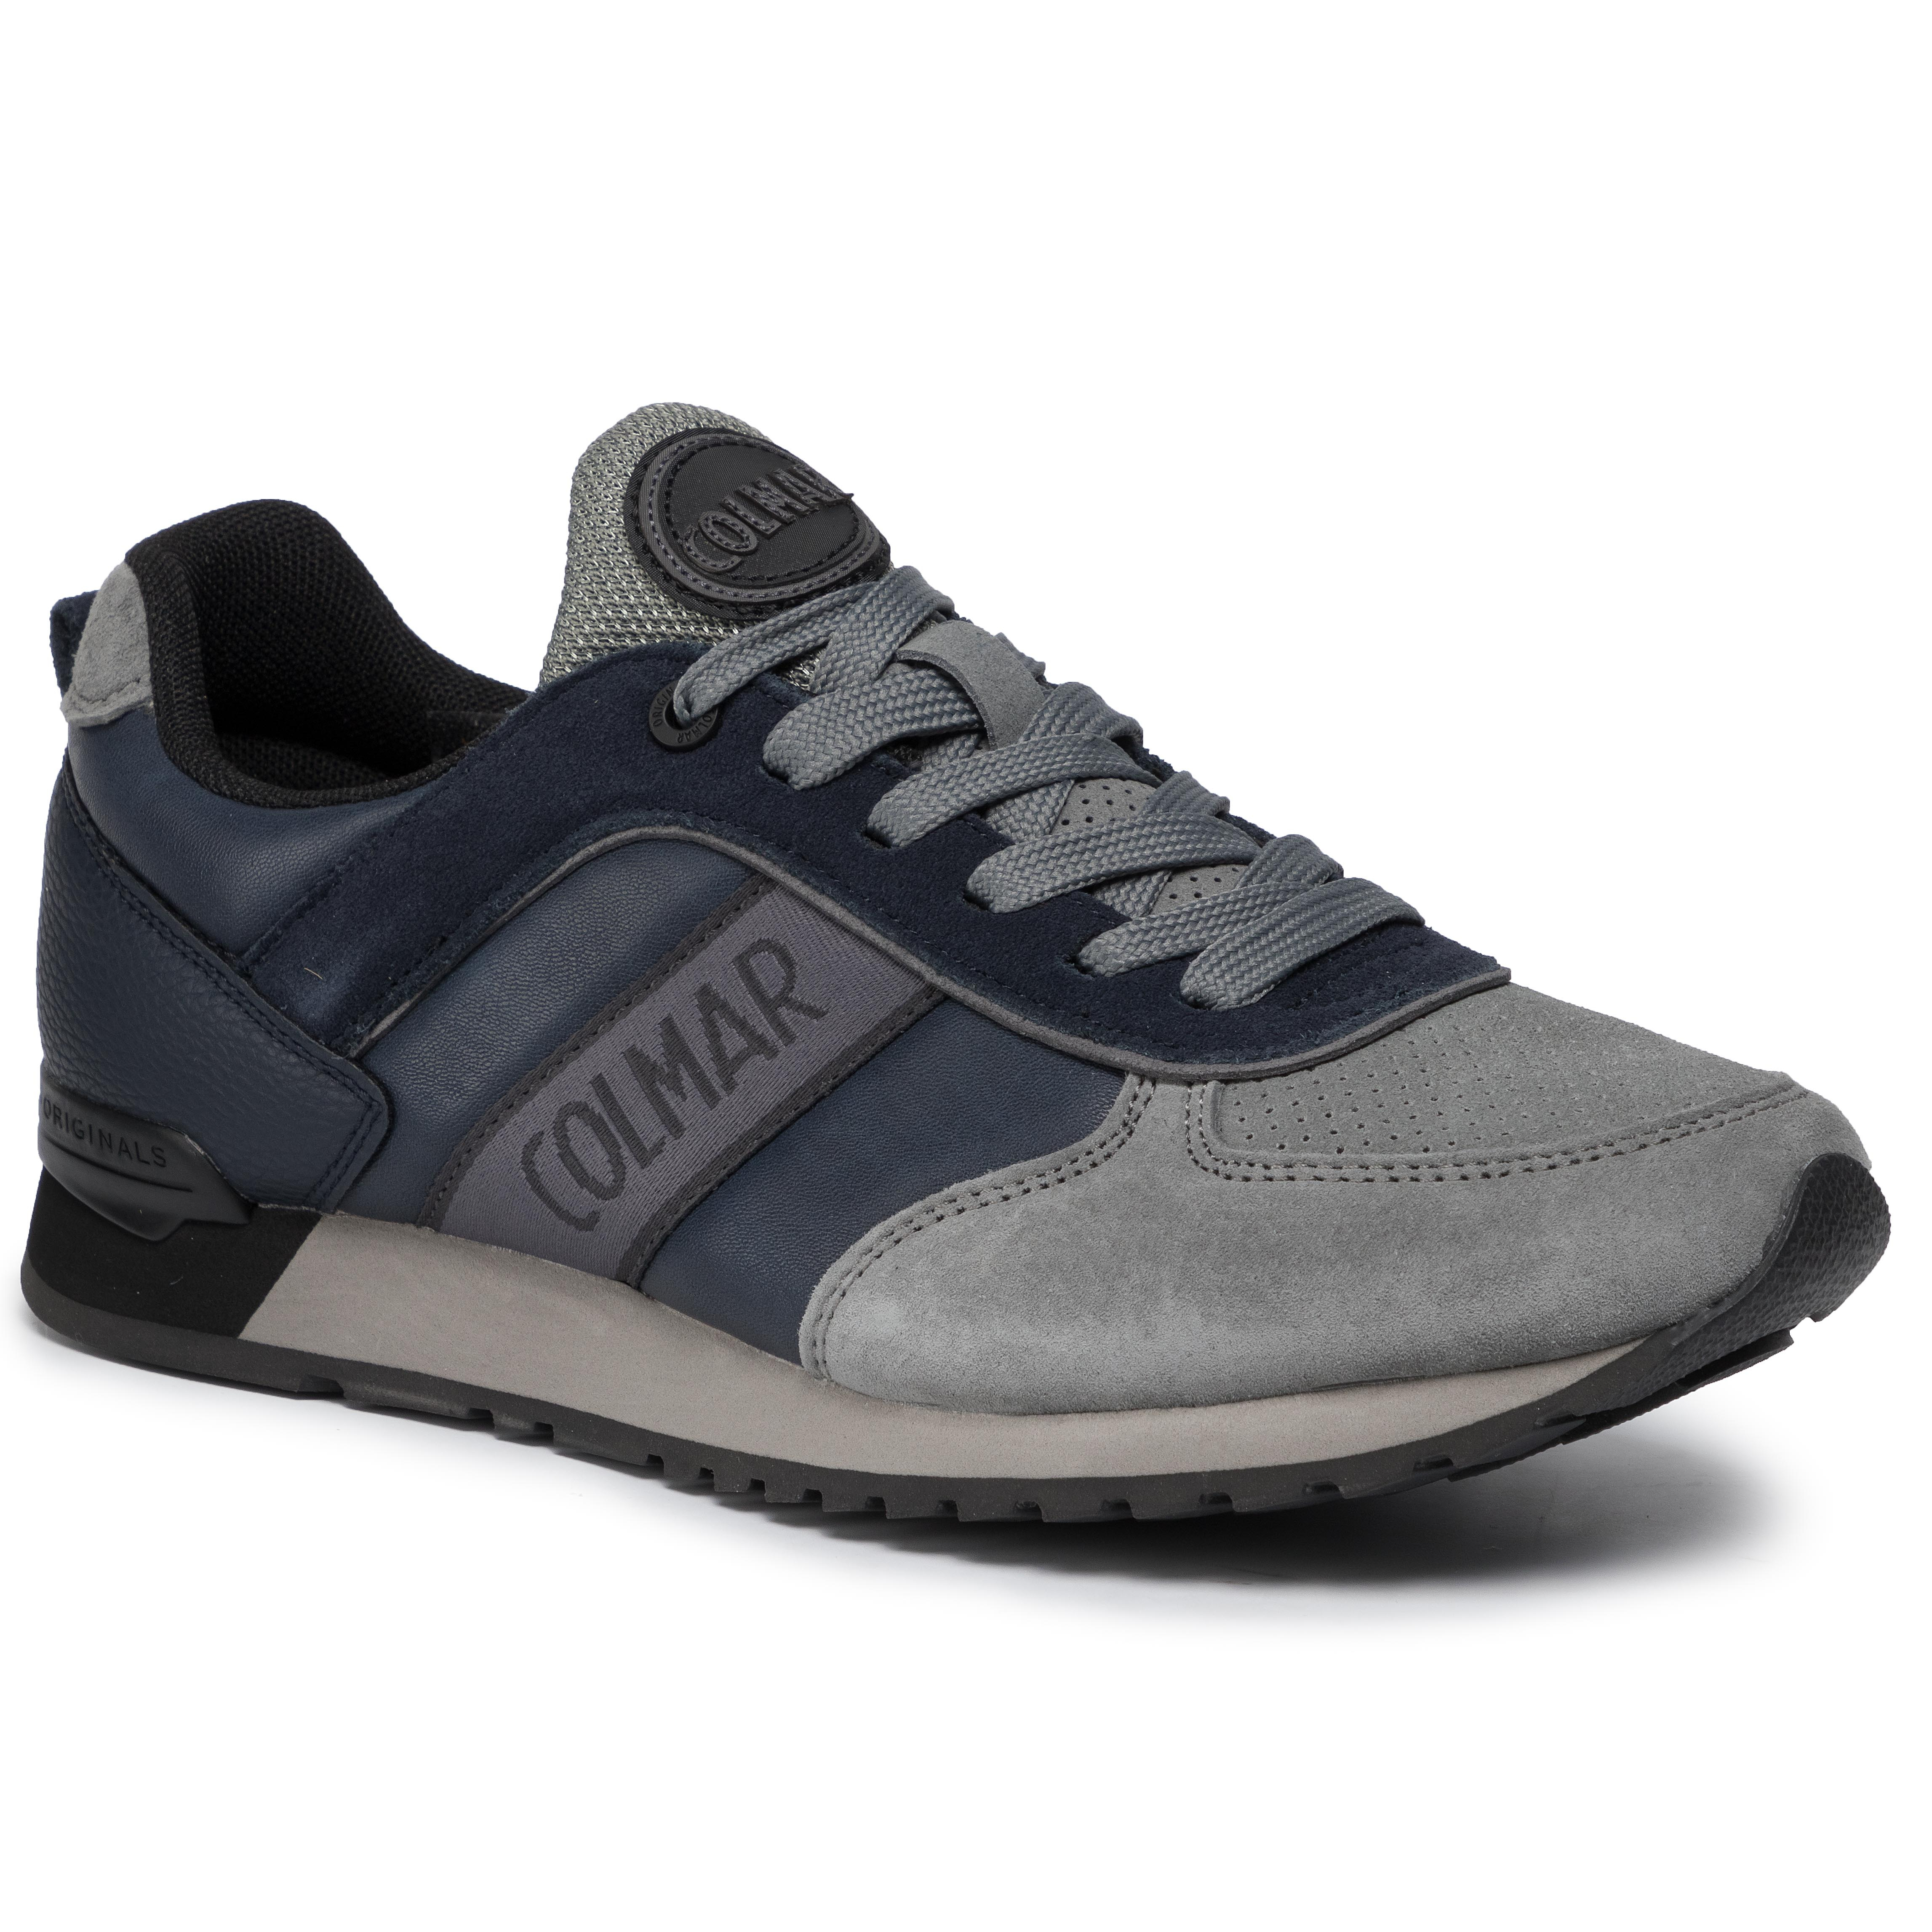 Sneakers COLMAR - Travis Runner Prime 040 Navy/Gray